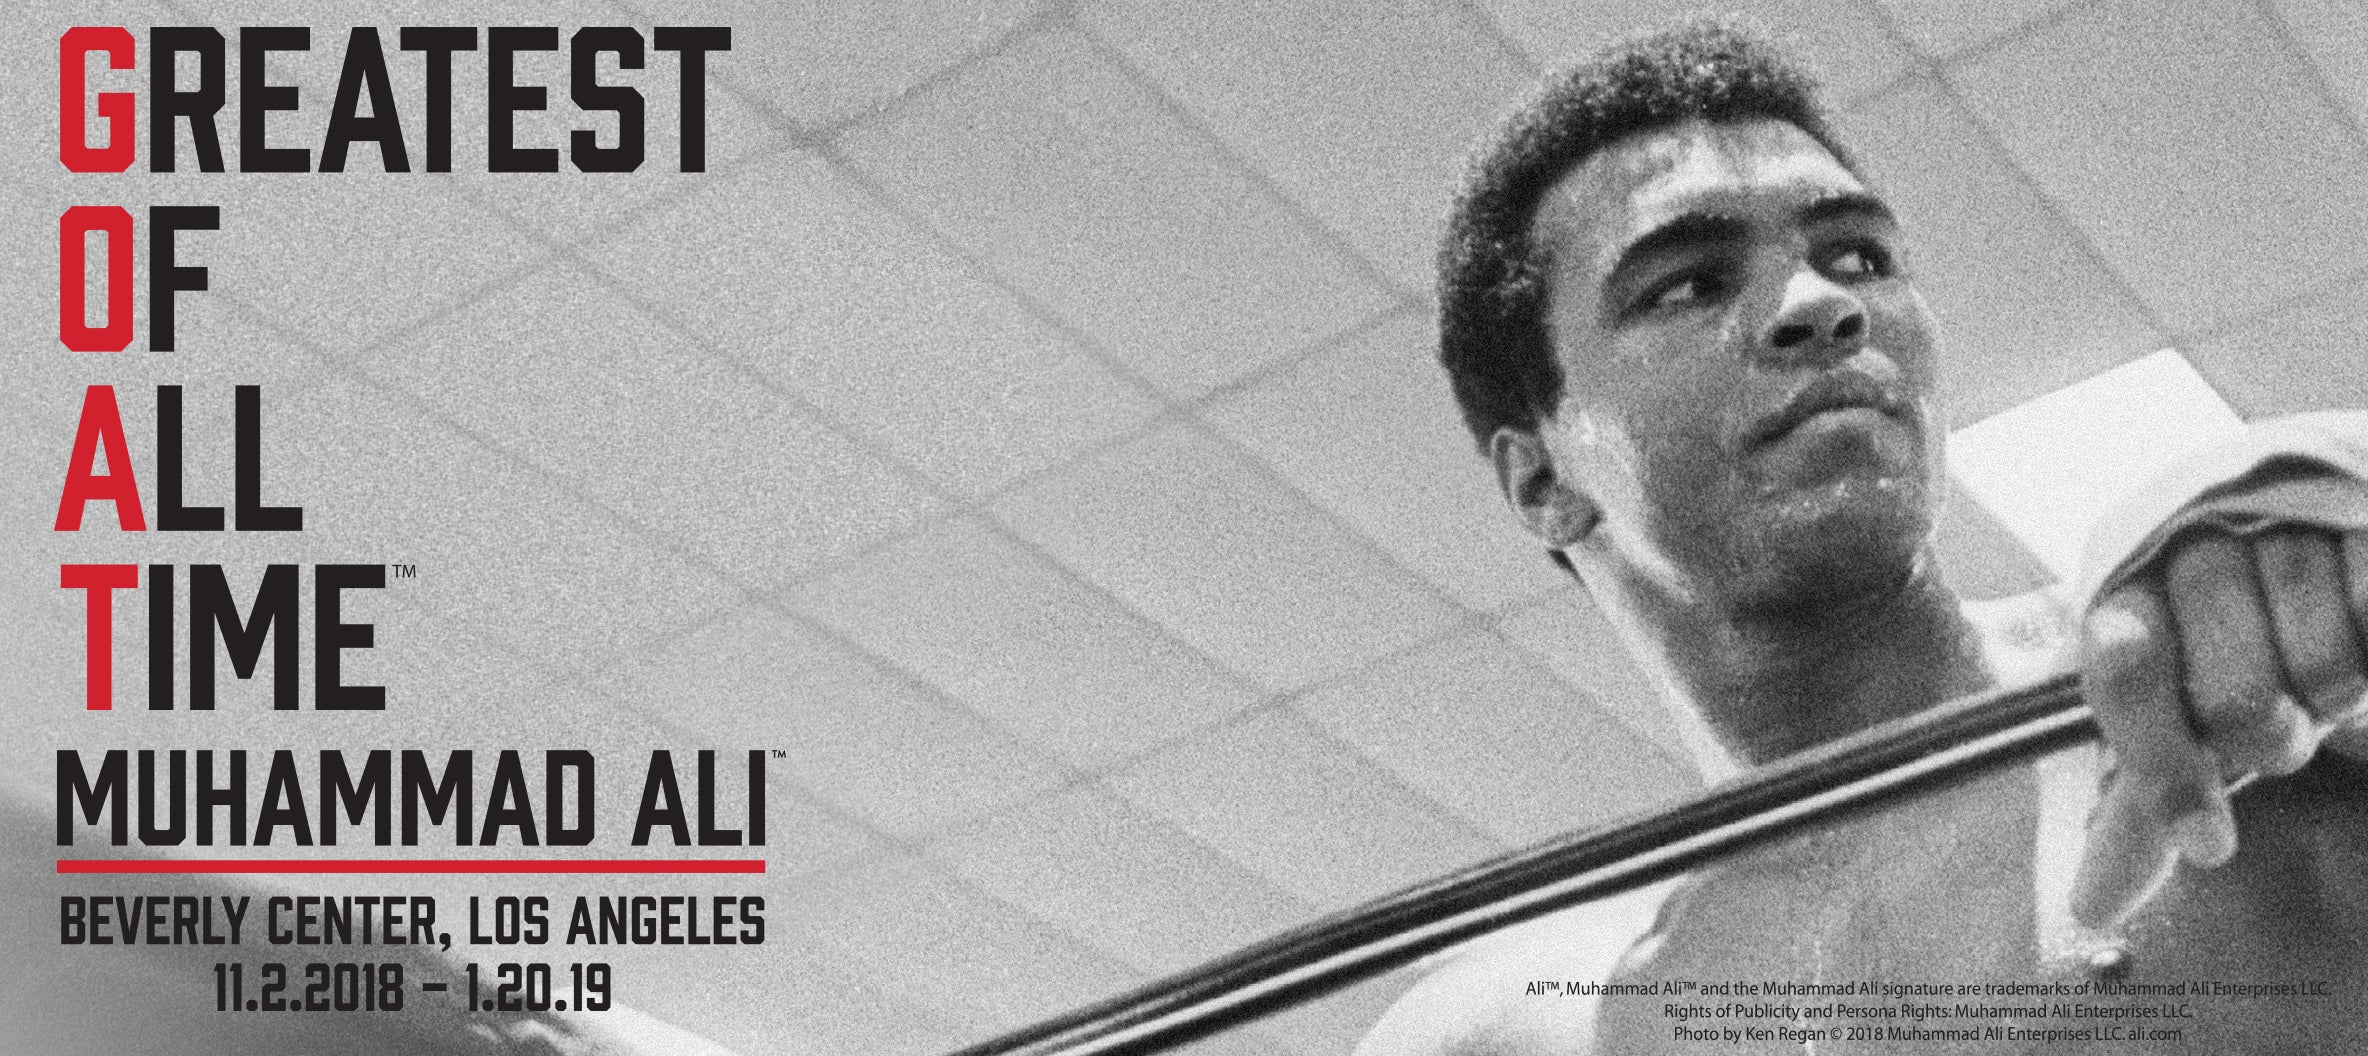 Muhammad Ali Greatest of All Time Beverly Center